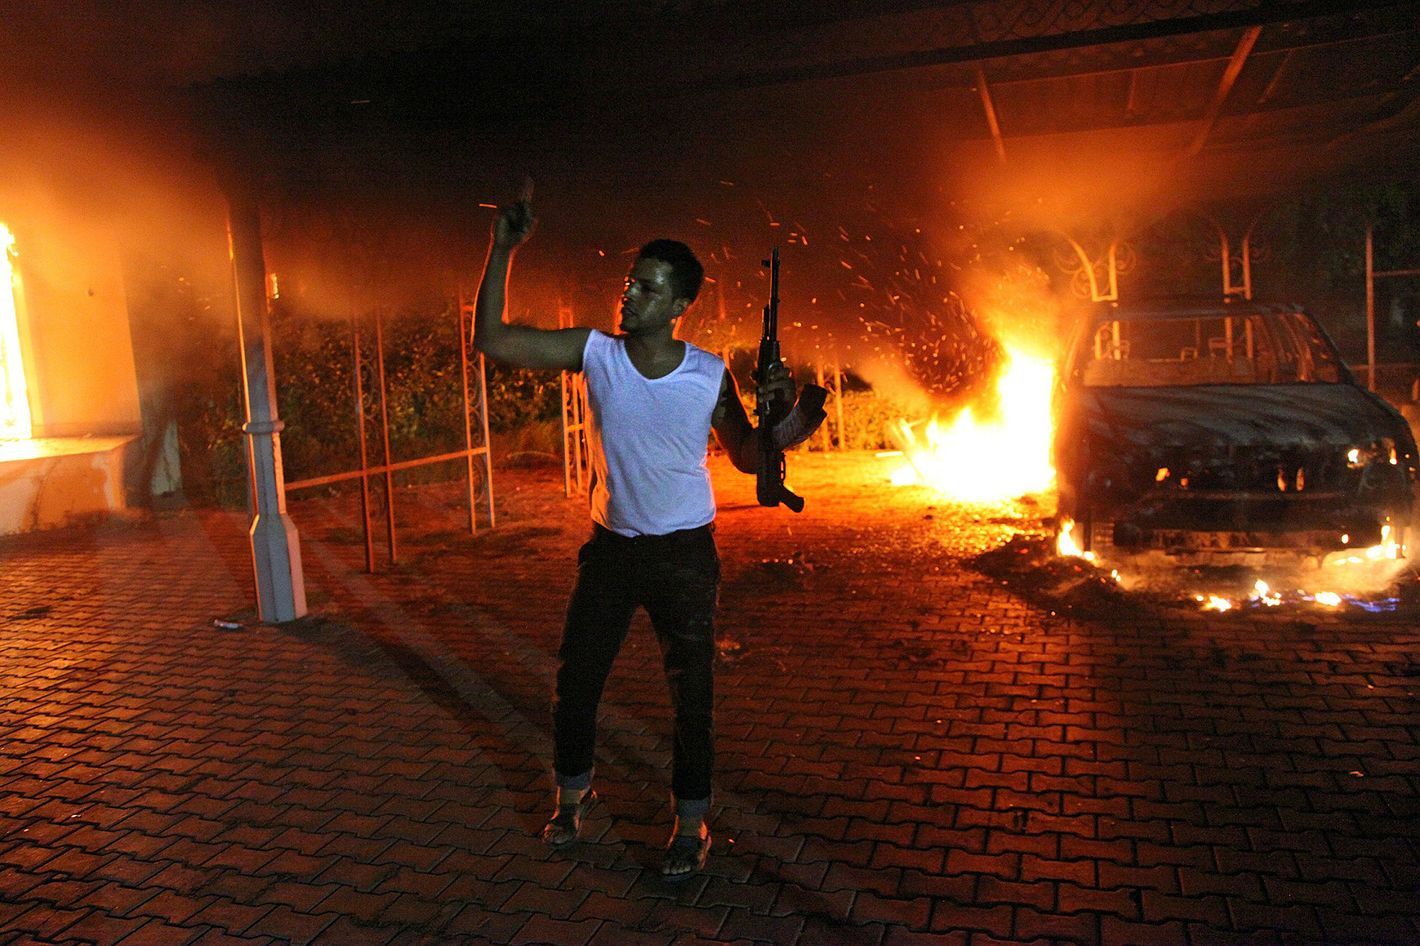 An armed man waves his rifle as buildings and cars are engulfed in flames after being set on fire inside the US consulate compound in Benghazi late on September 11, 2012. An armed mob protesting over a film they said offended Islam, attacked the US consulate in Benghazi and set fire to the building, killing one American, witnesses and officials said.